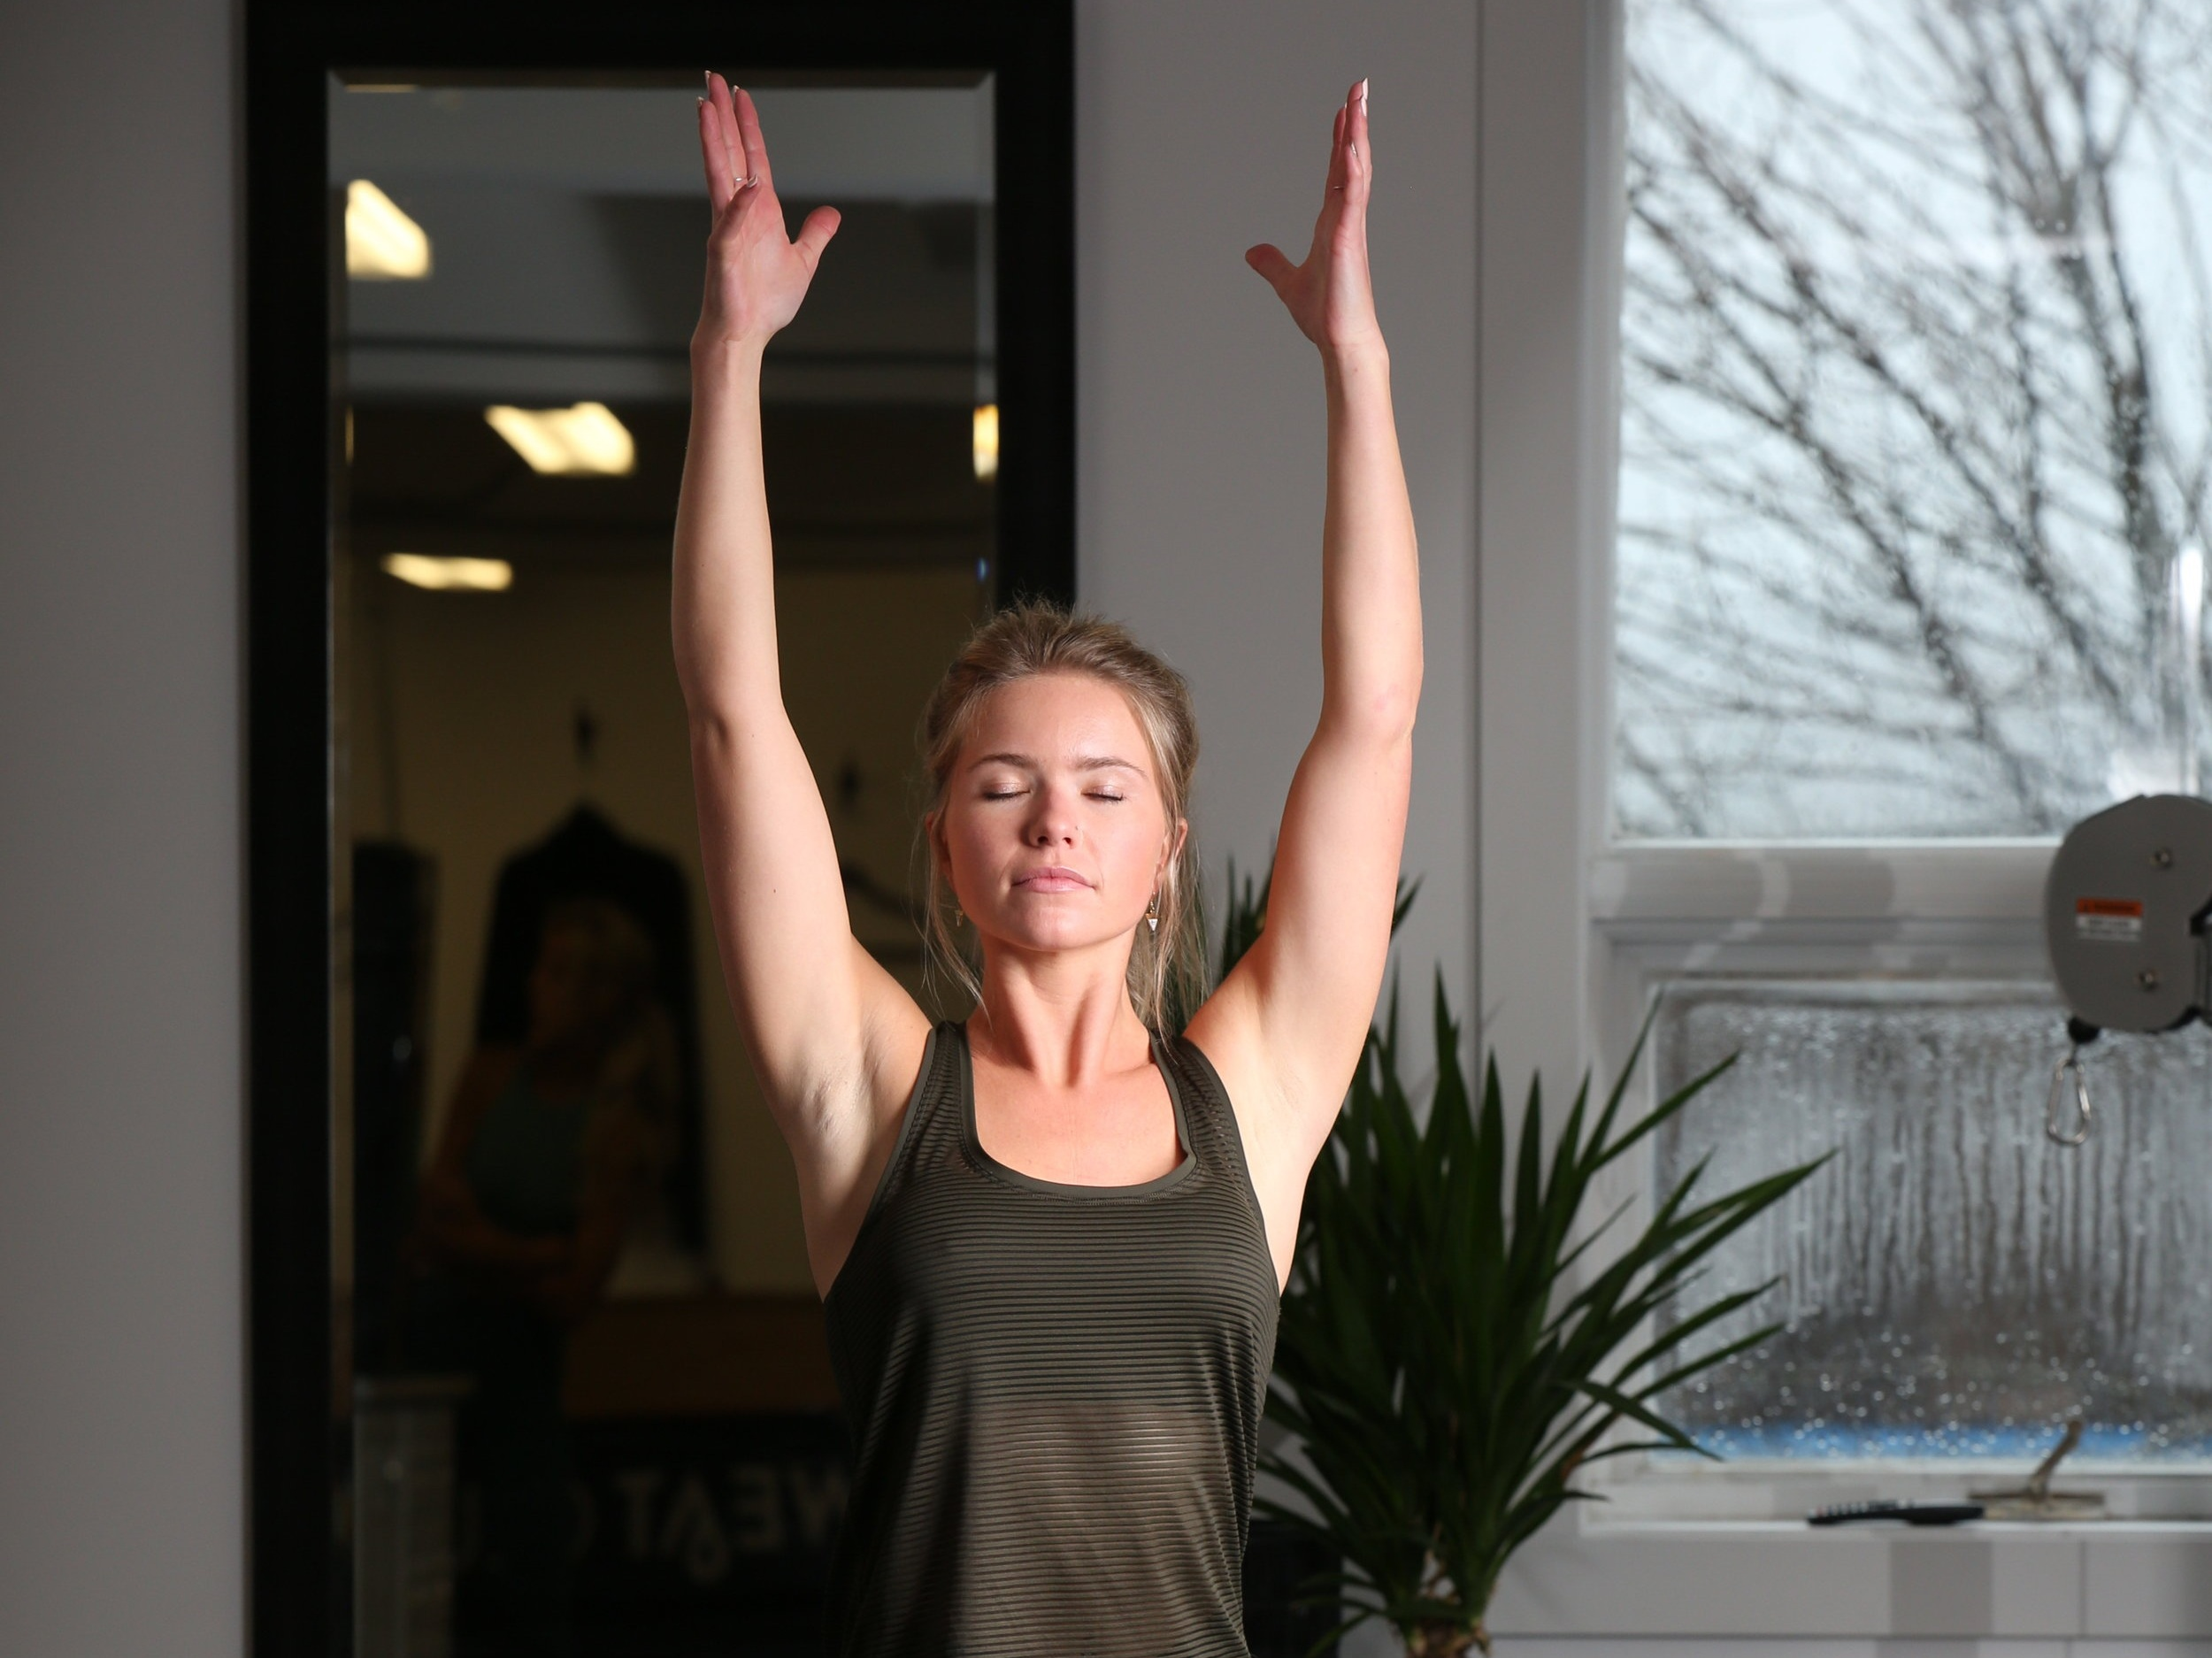 SWEAT & STRETCH - This 60 minute combo class is all about balance. Come for a quick & effective circuit style workout, then unwind with some yoga and deep stretching. Your body will thank you. Please bring your own mat. All levels welcome.